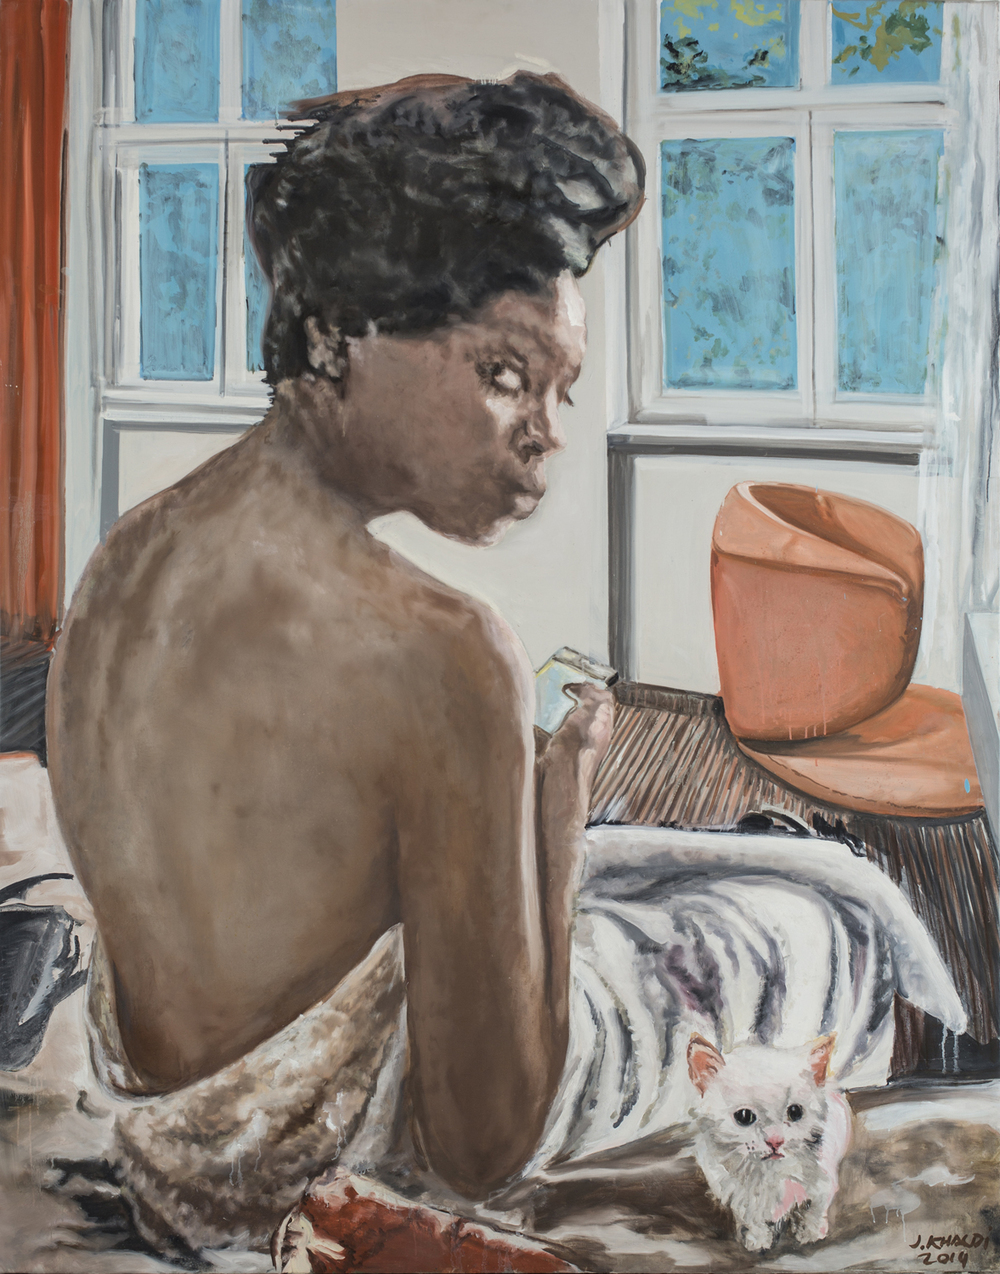 Nicole (2013-14), Oil on canvas, 230 * 180 cm.jpg